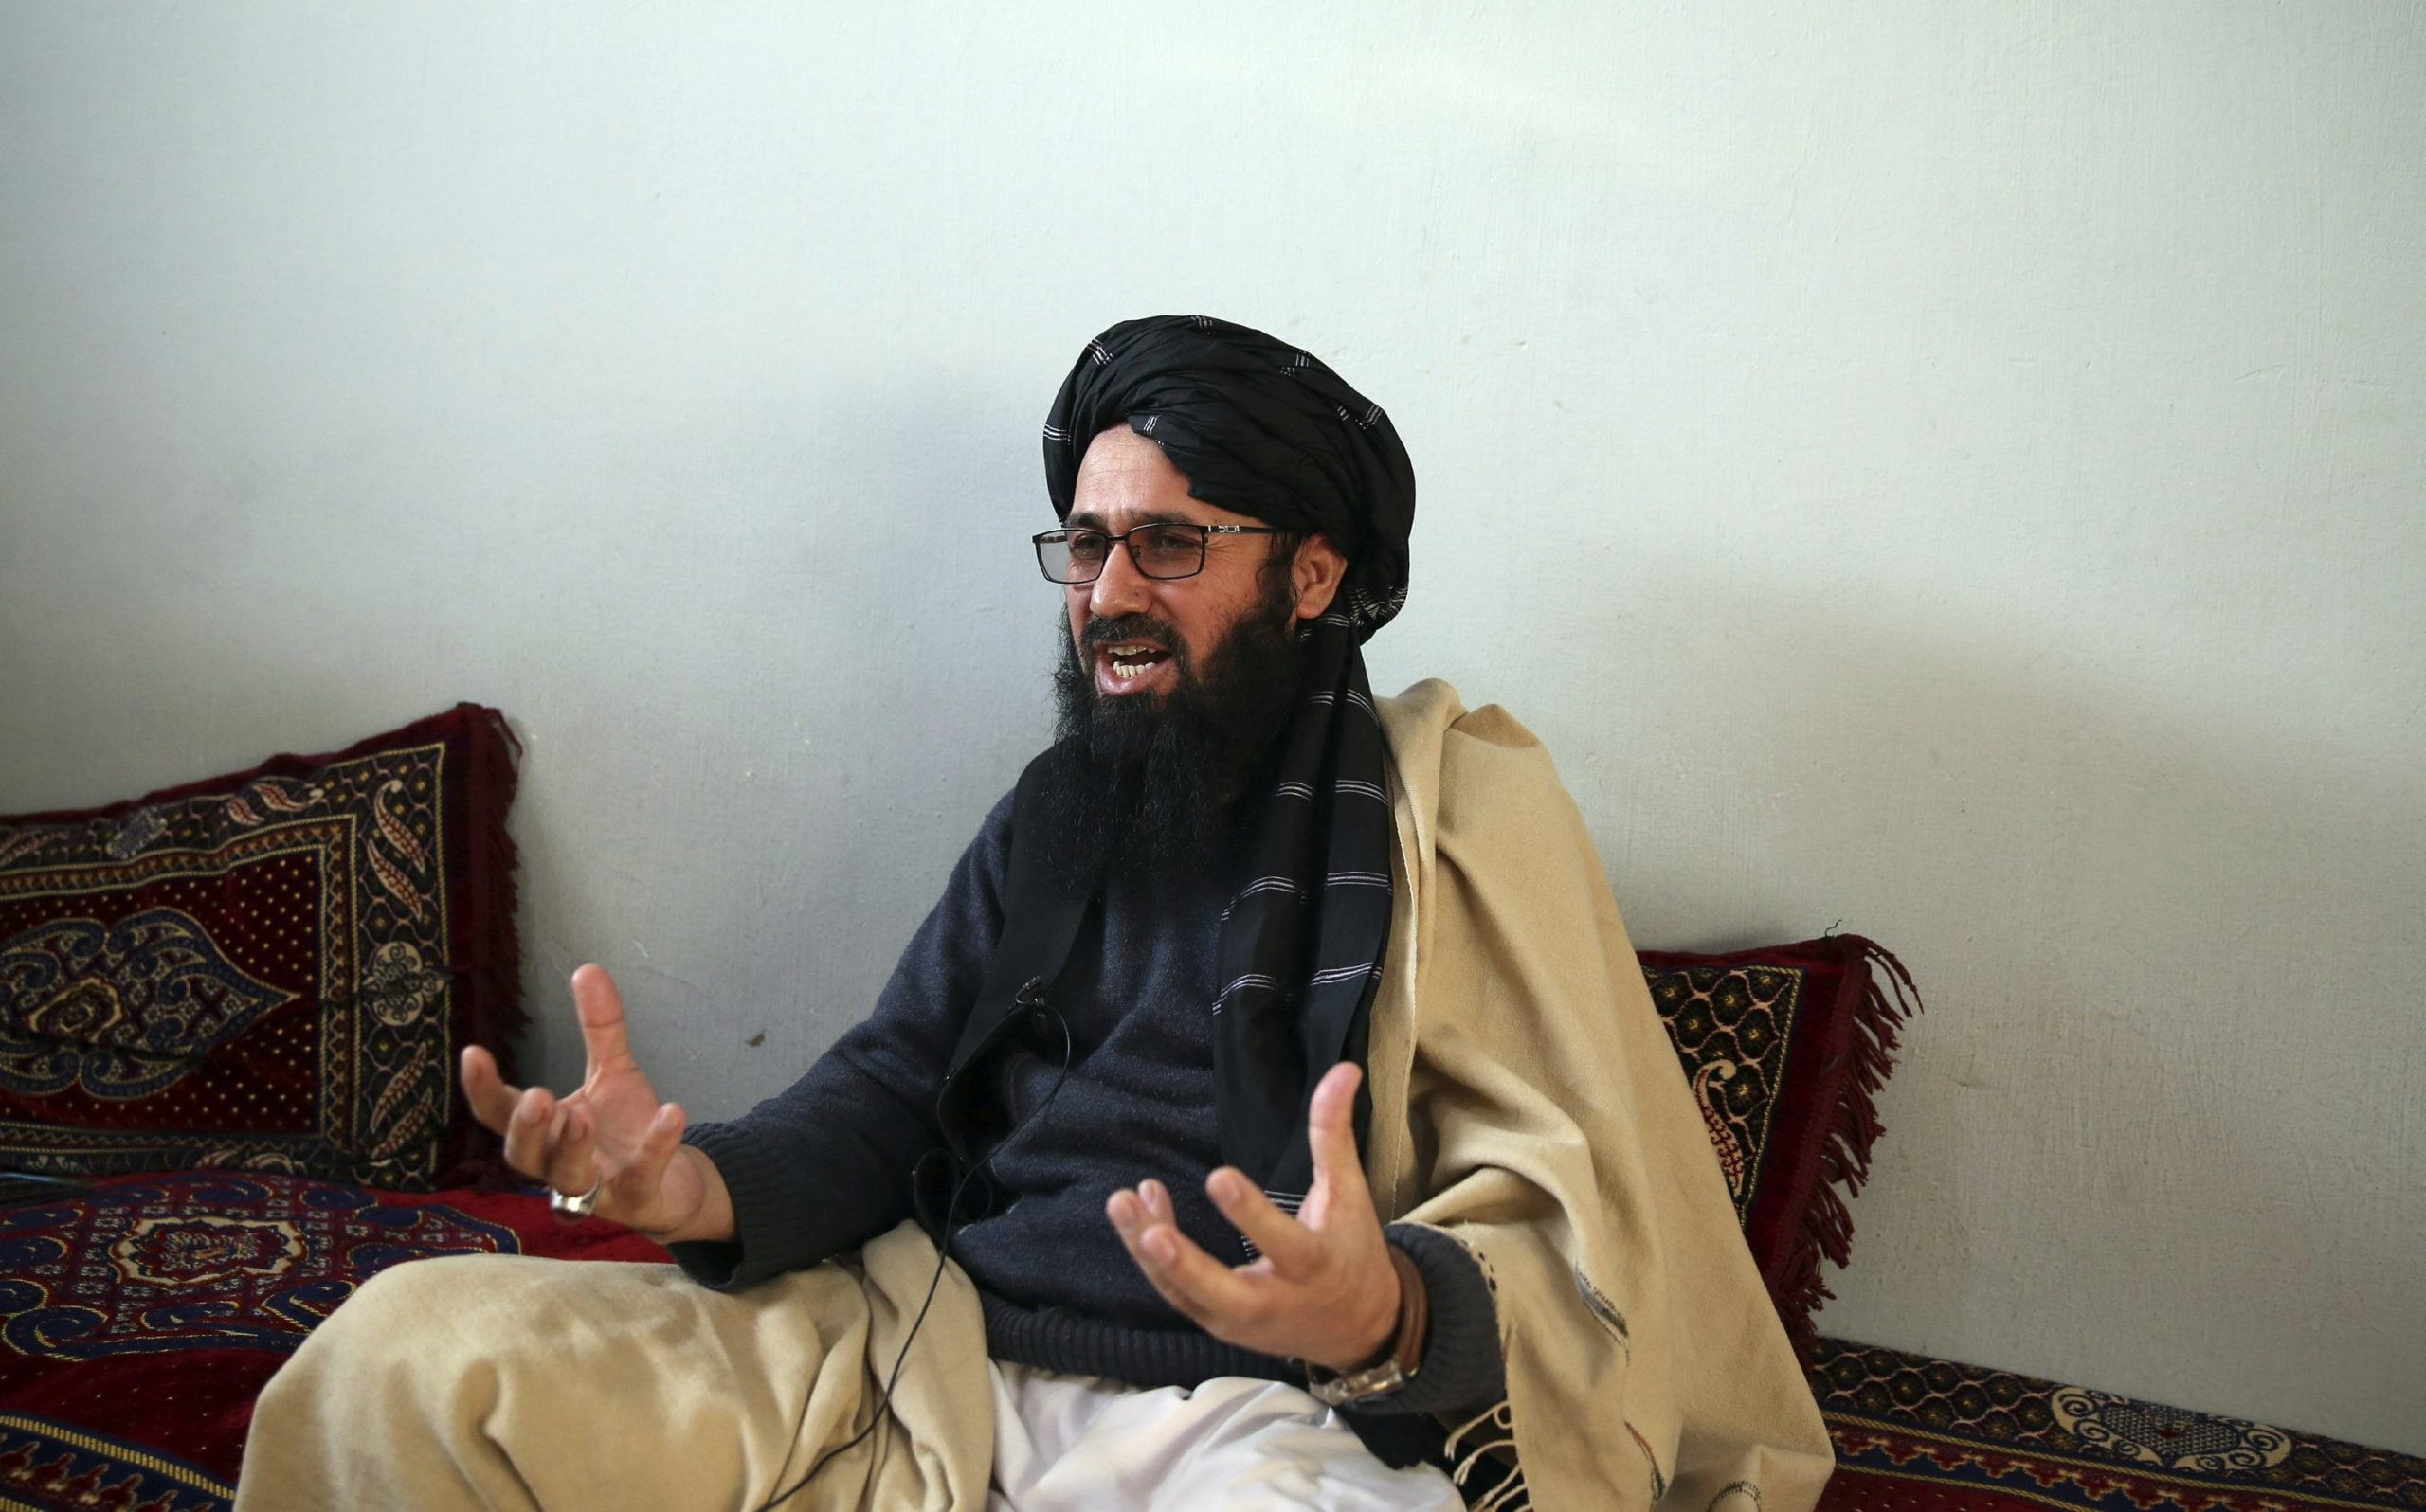 The Taliban await a peace agreement with the US in the coming weeks in Afghanistan